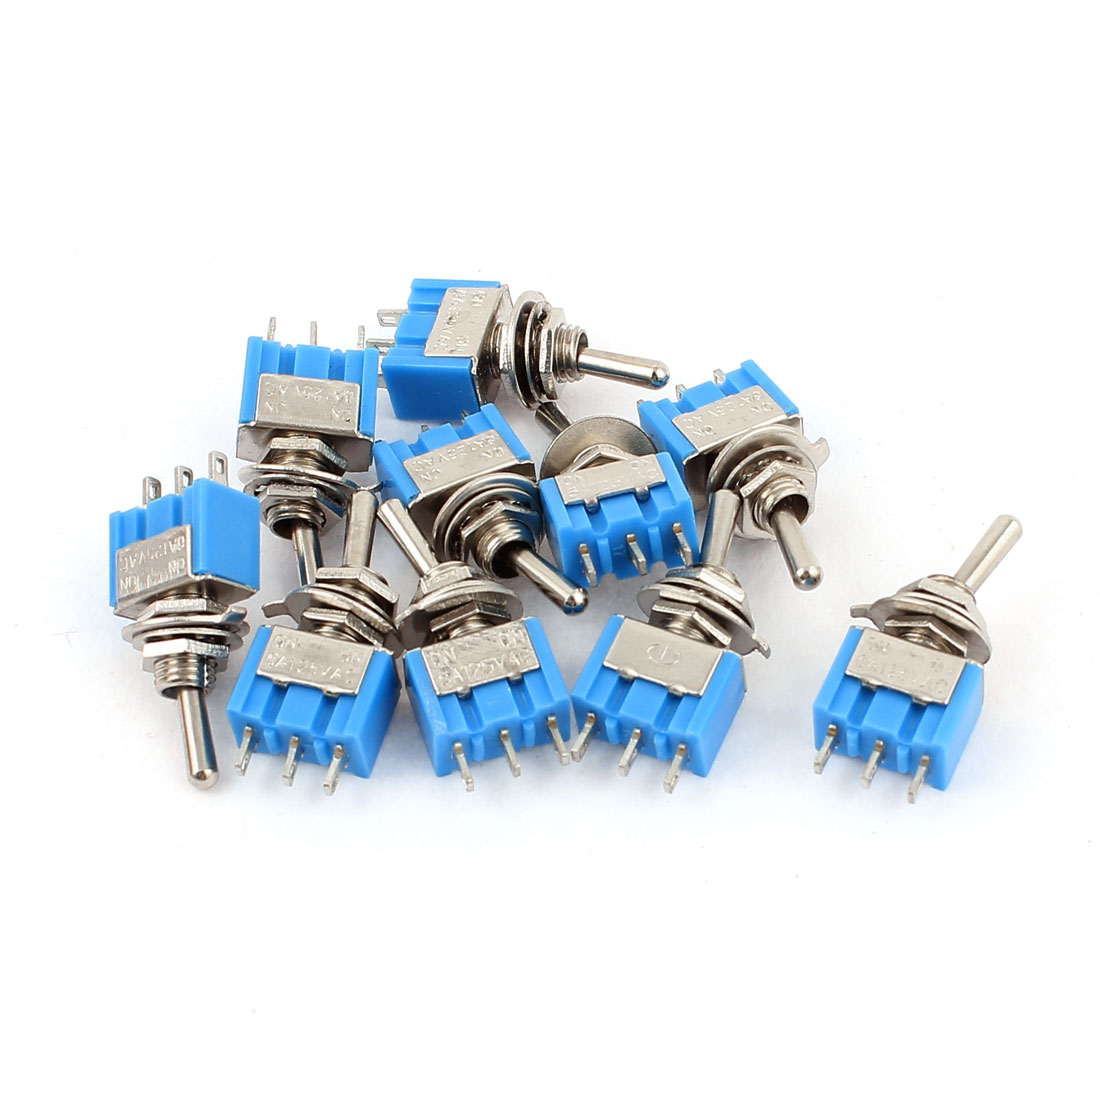 AC 125V 6A SPDT ON-ON 2 Positions 3 Pin Latching Miniature Toggle Switch 10 Pcs